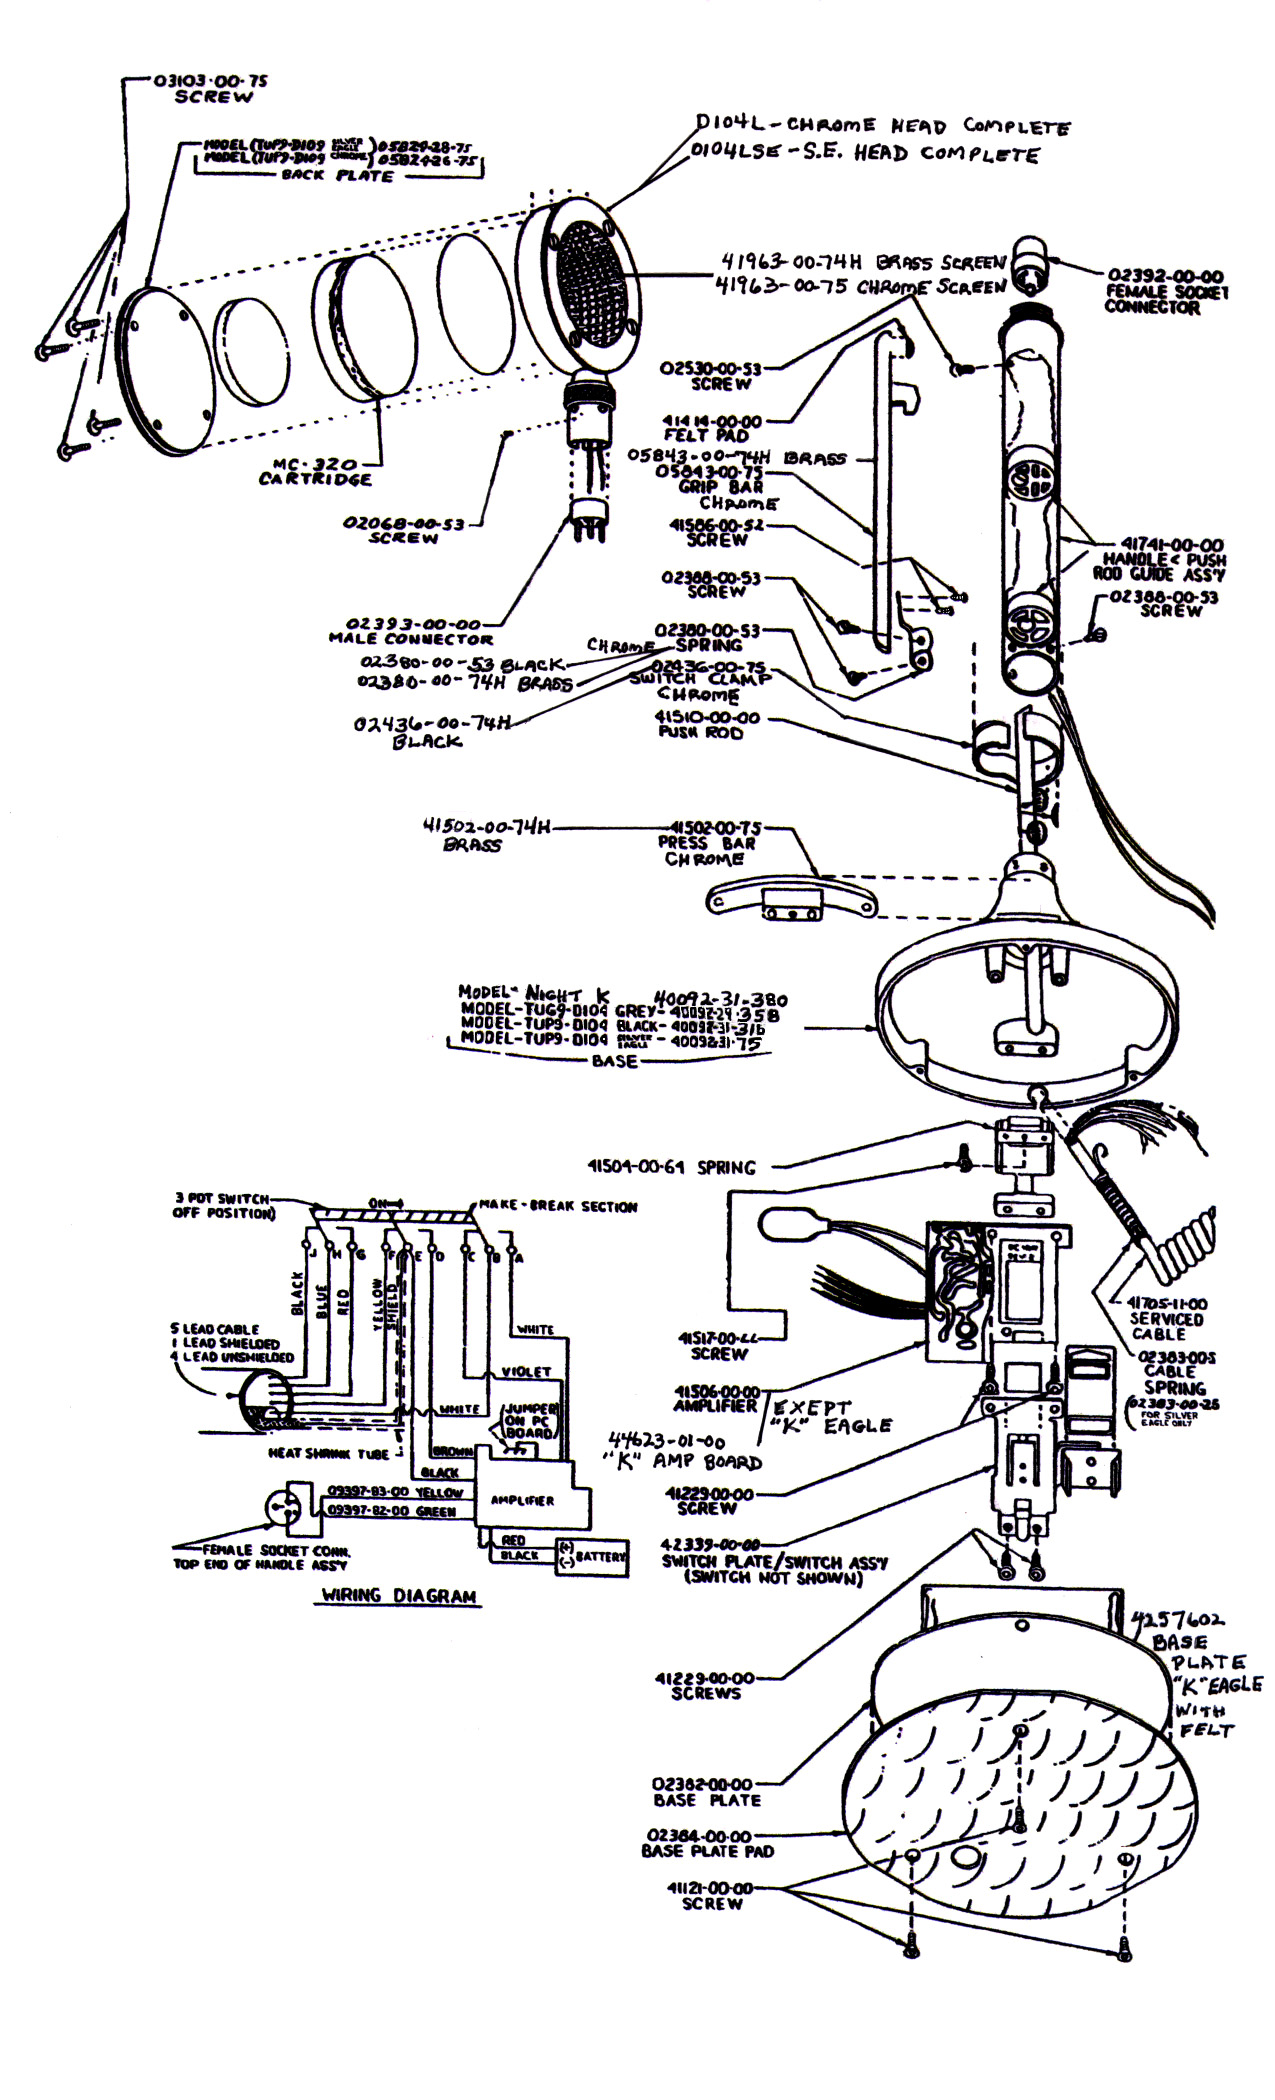 hight resolution of microphone parts diagram wiring diagram inside microphone parts diagram